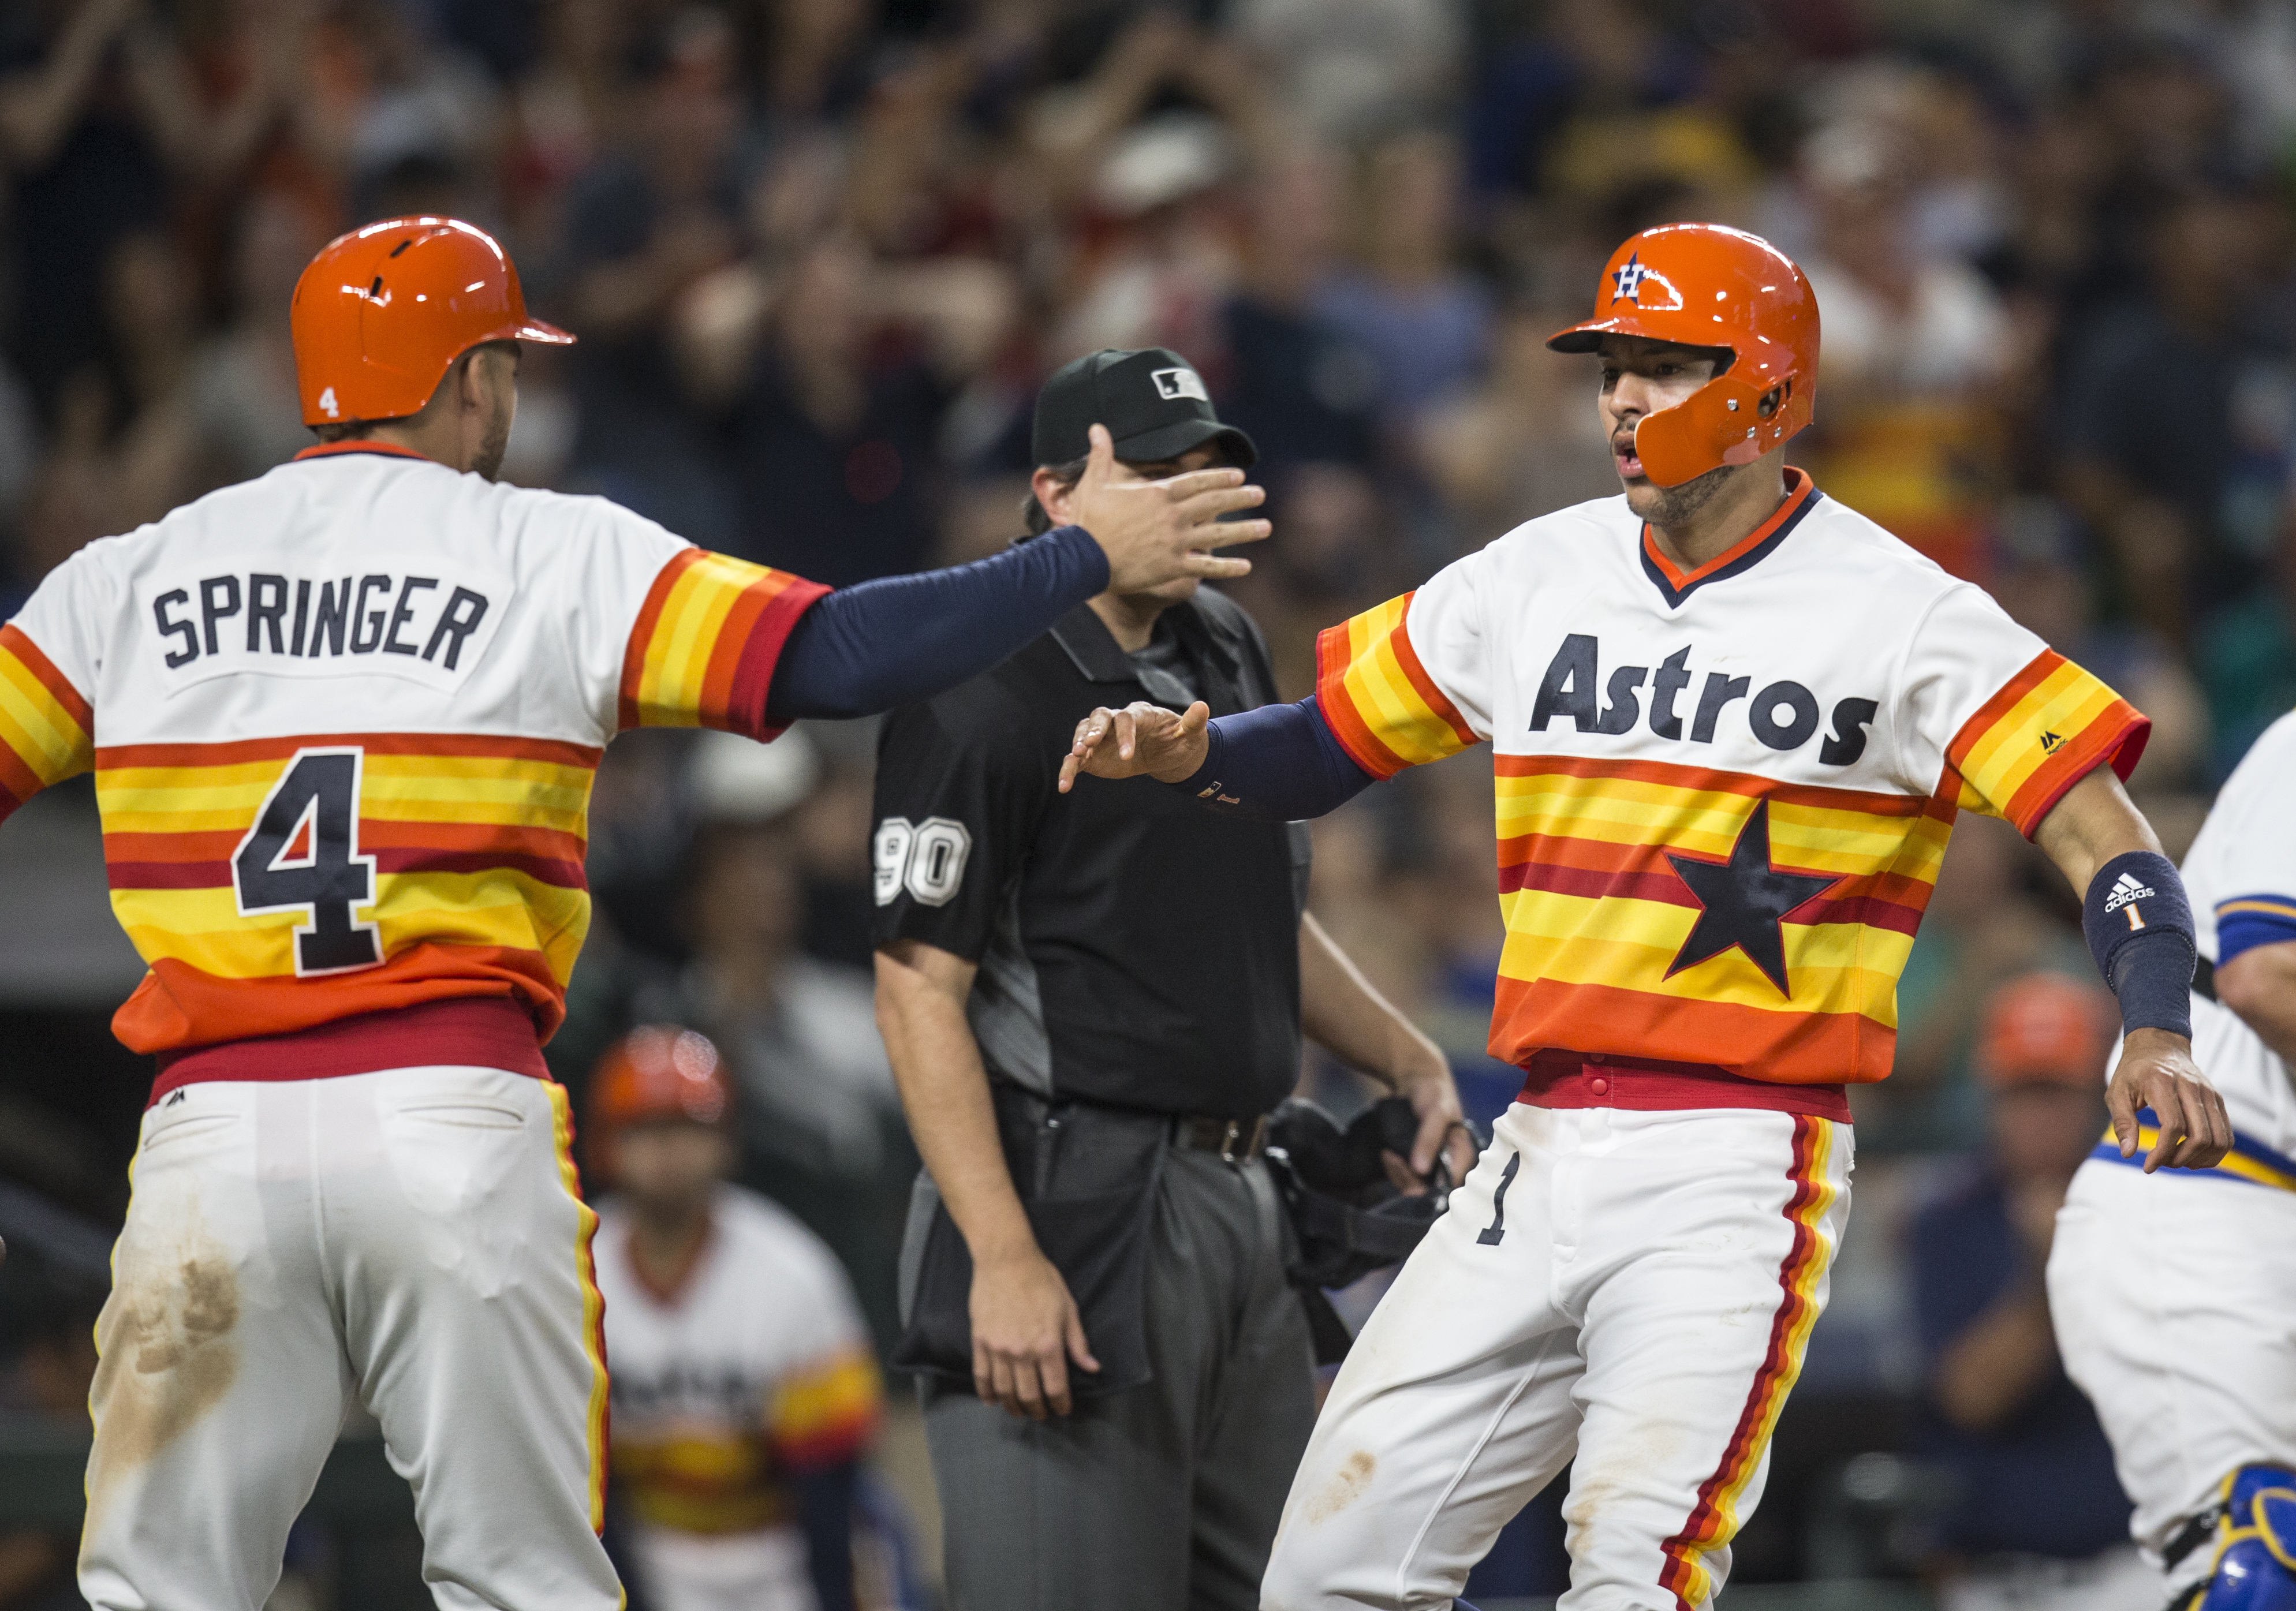 newest 6b96b 504a9 Astros wear throwback uniforms in Seattle - The Crawfish Boxes